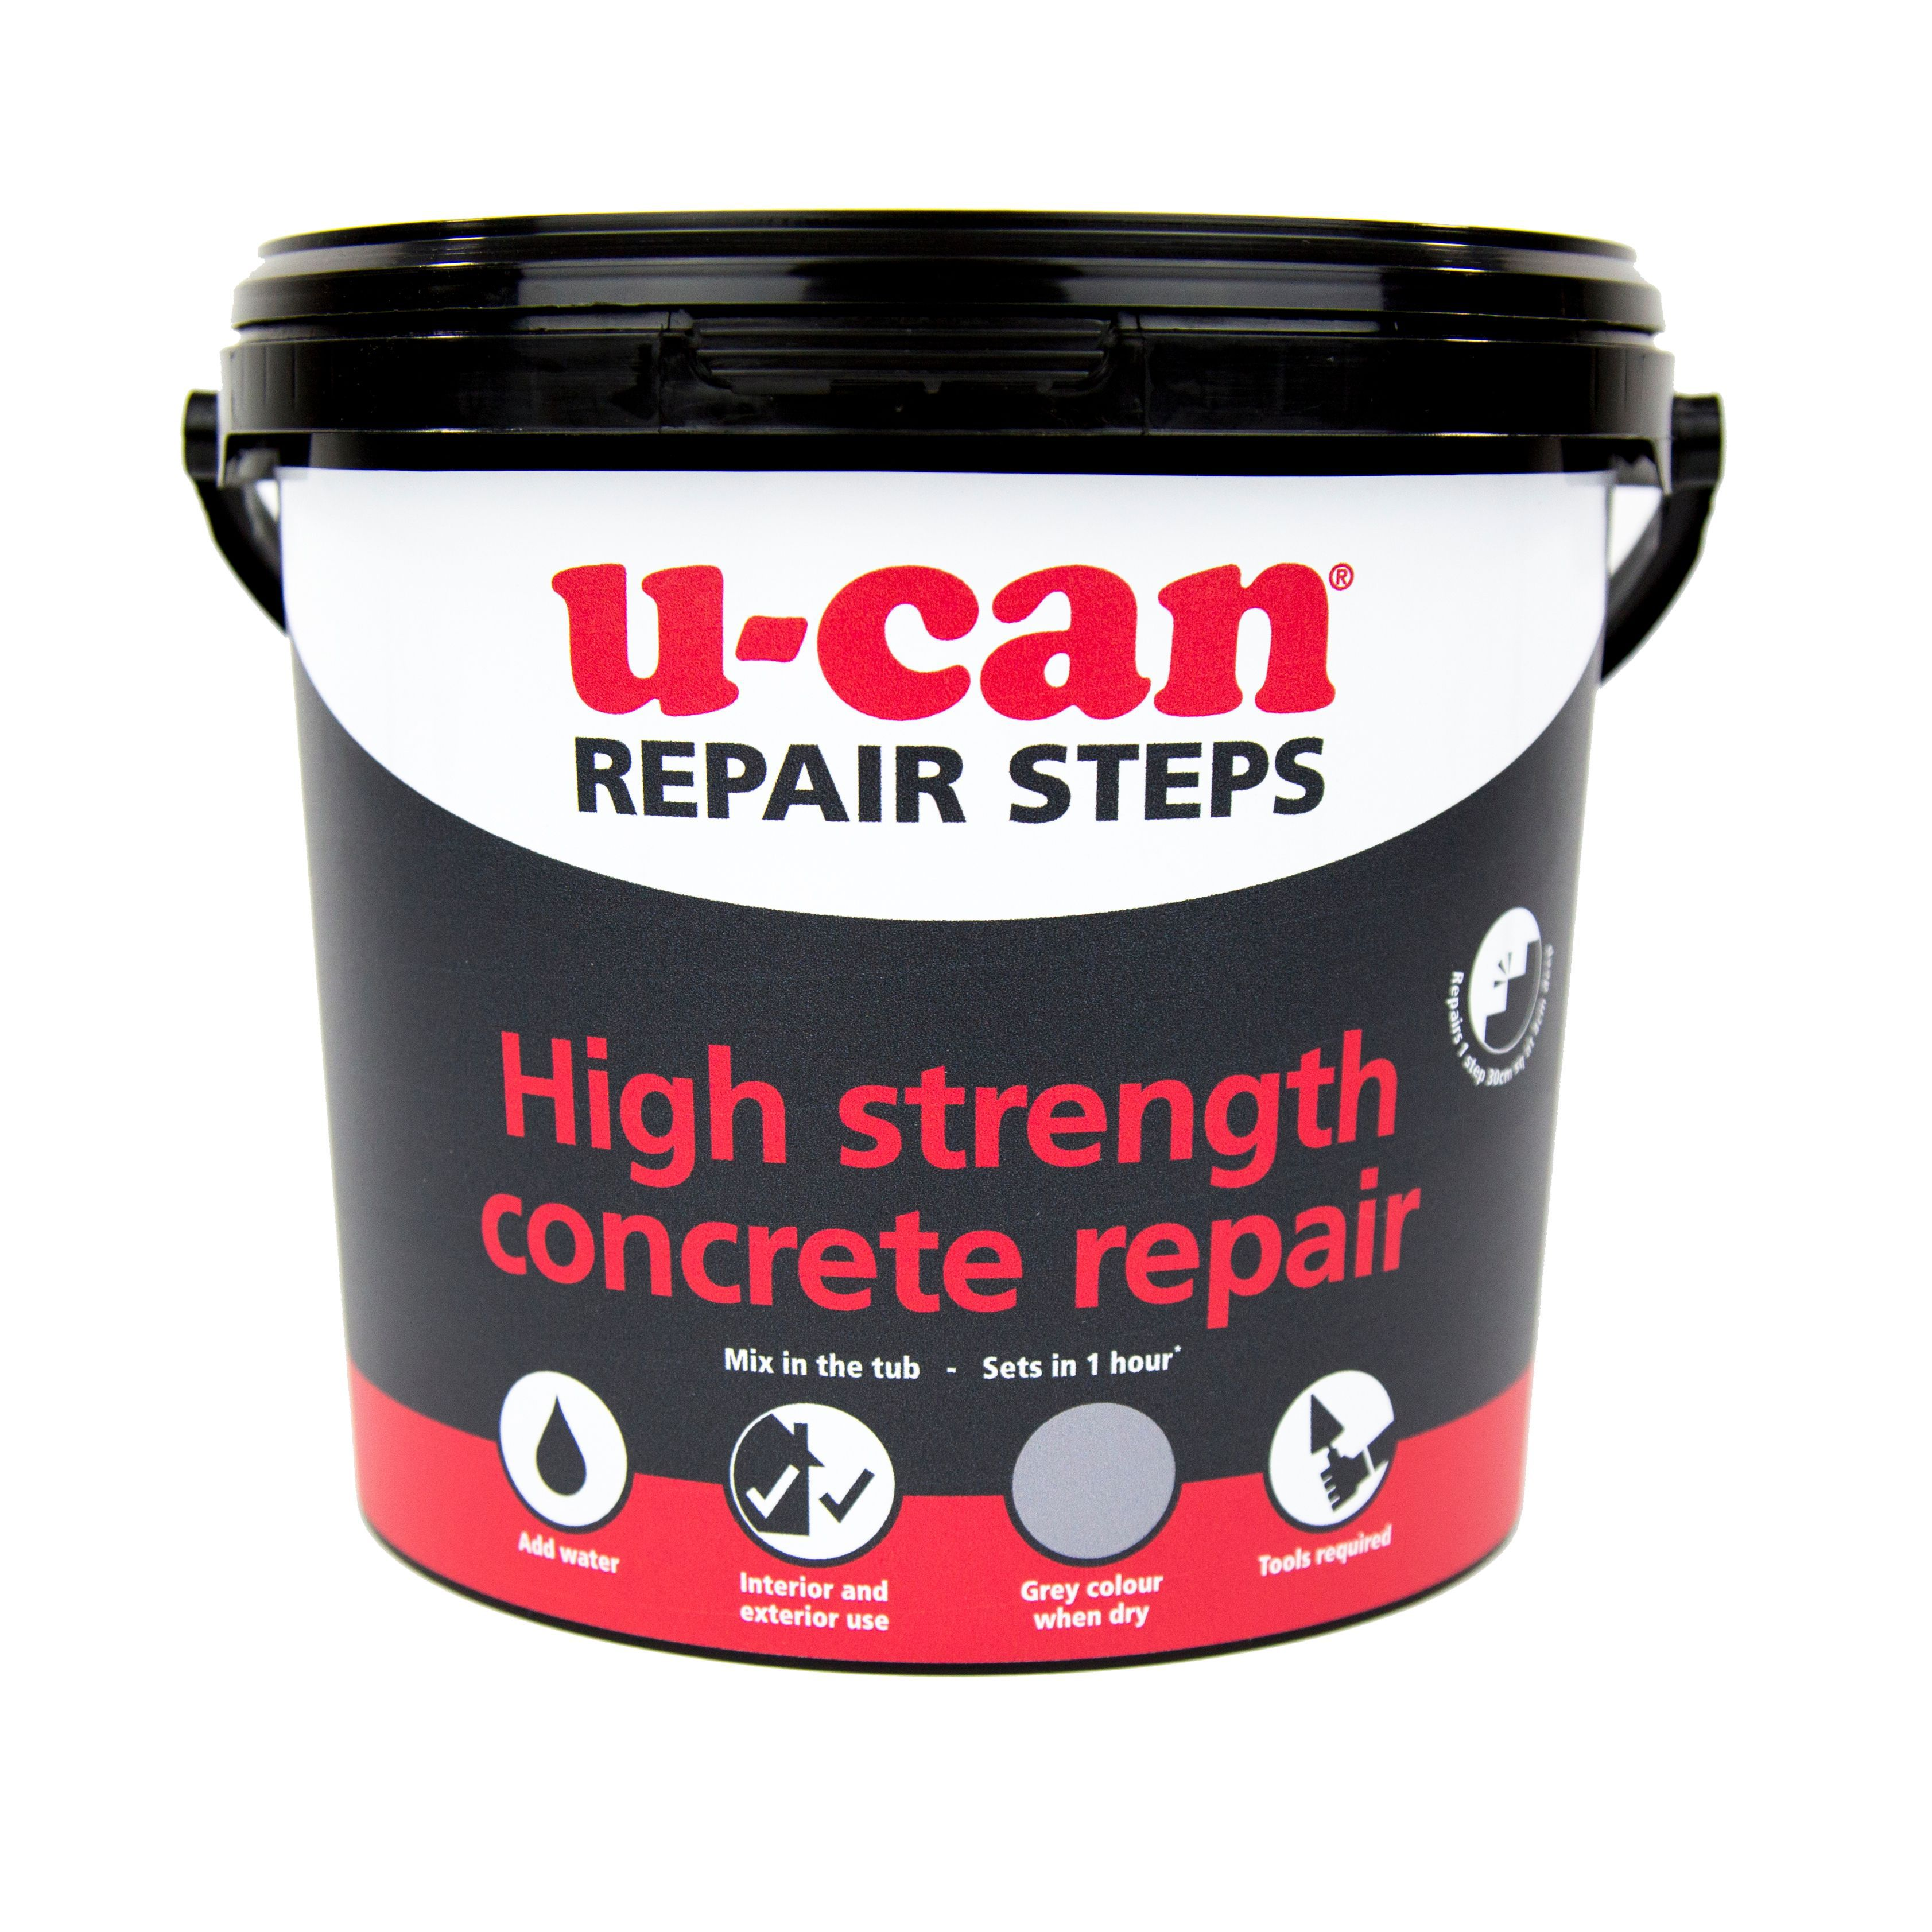 1113327 BQ additionally Rawl Concrete Fixing Shield Anchor M10 also Budget Garage Floor Paint Option likewise 400l Concrete Mixer 0 further Excavation Underneath House. on concrete repair